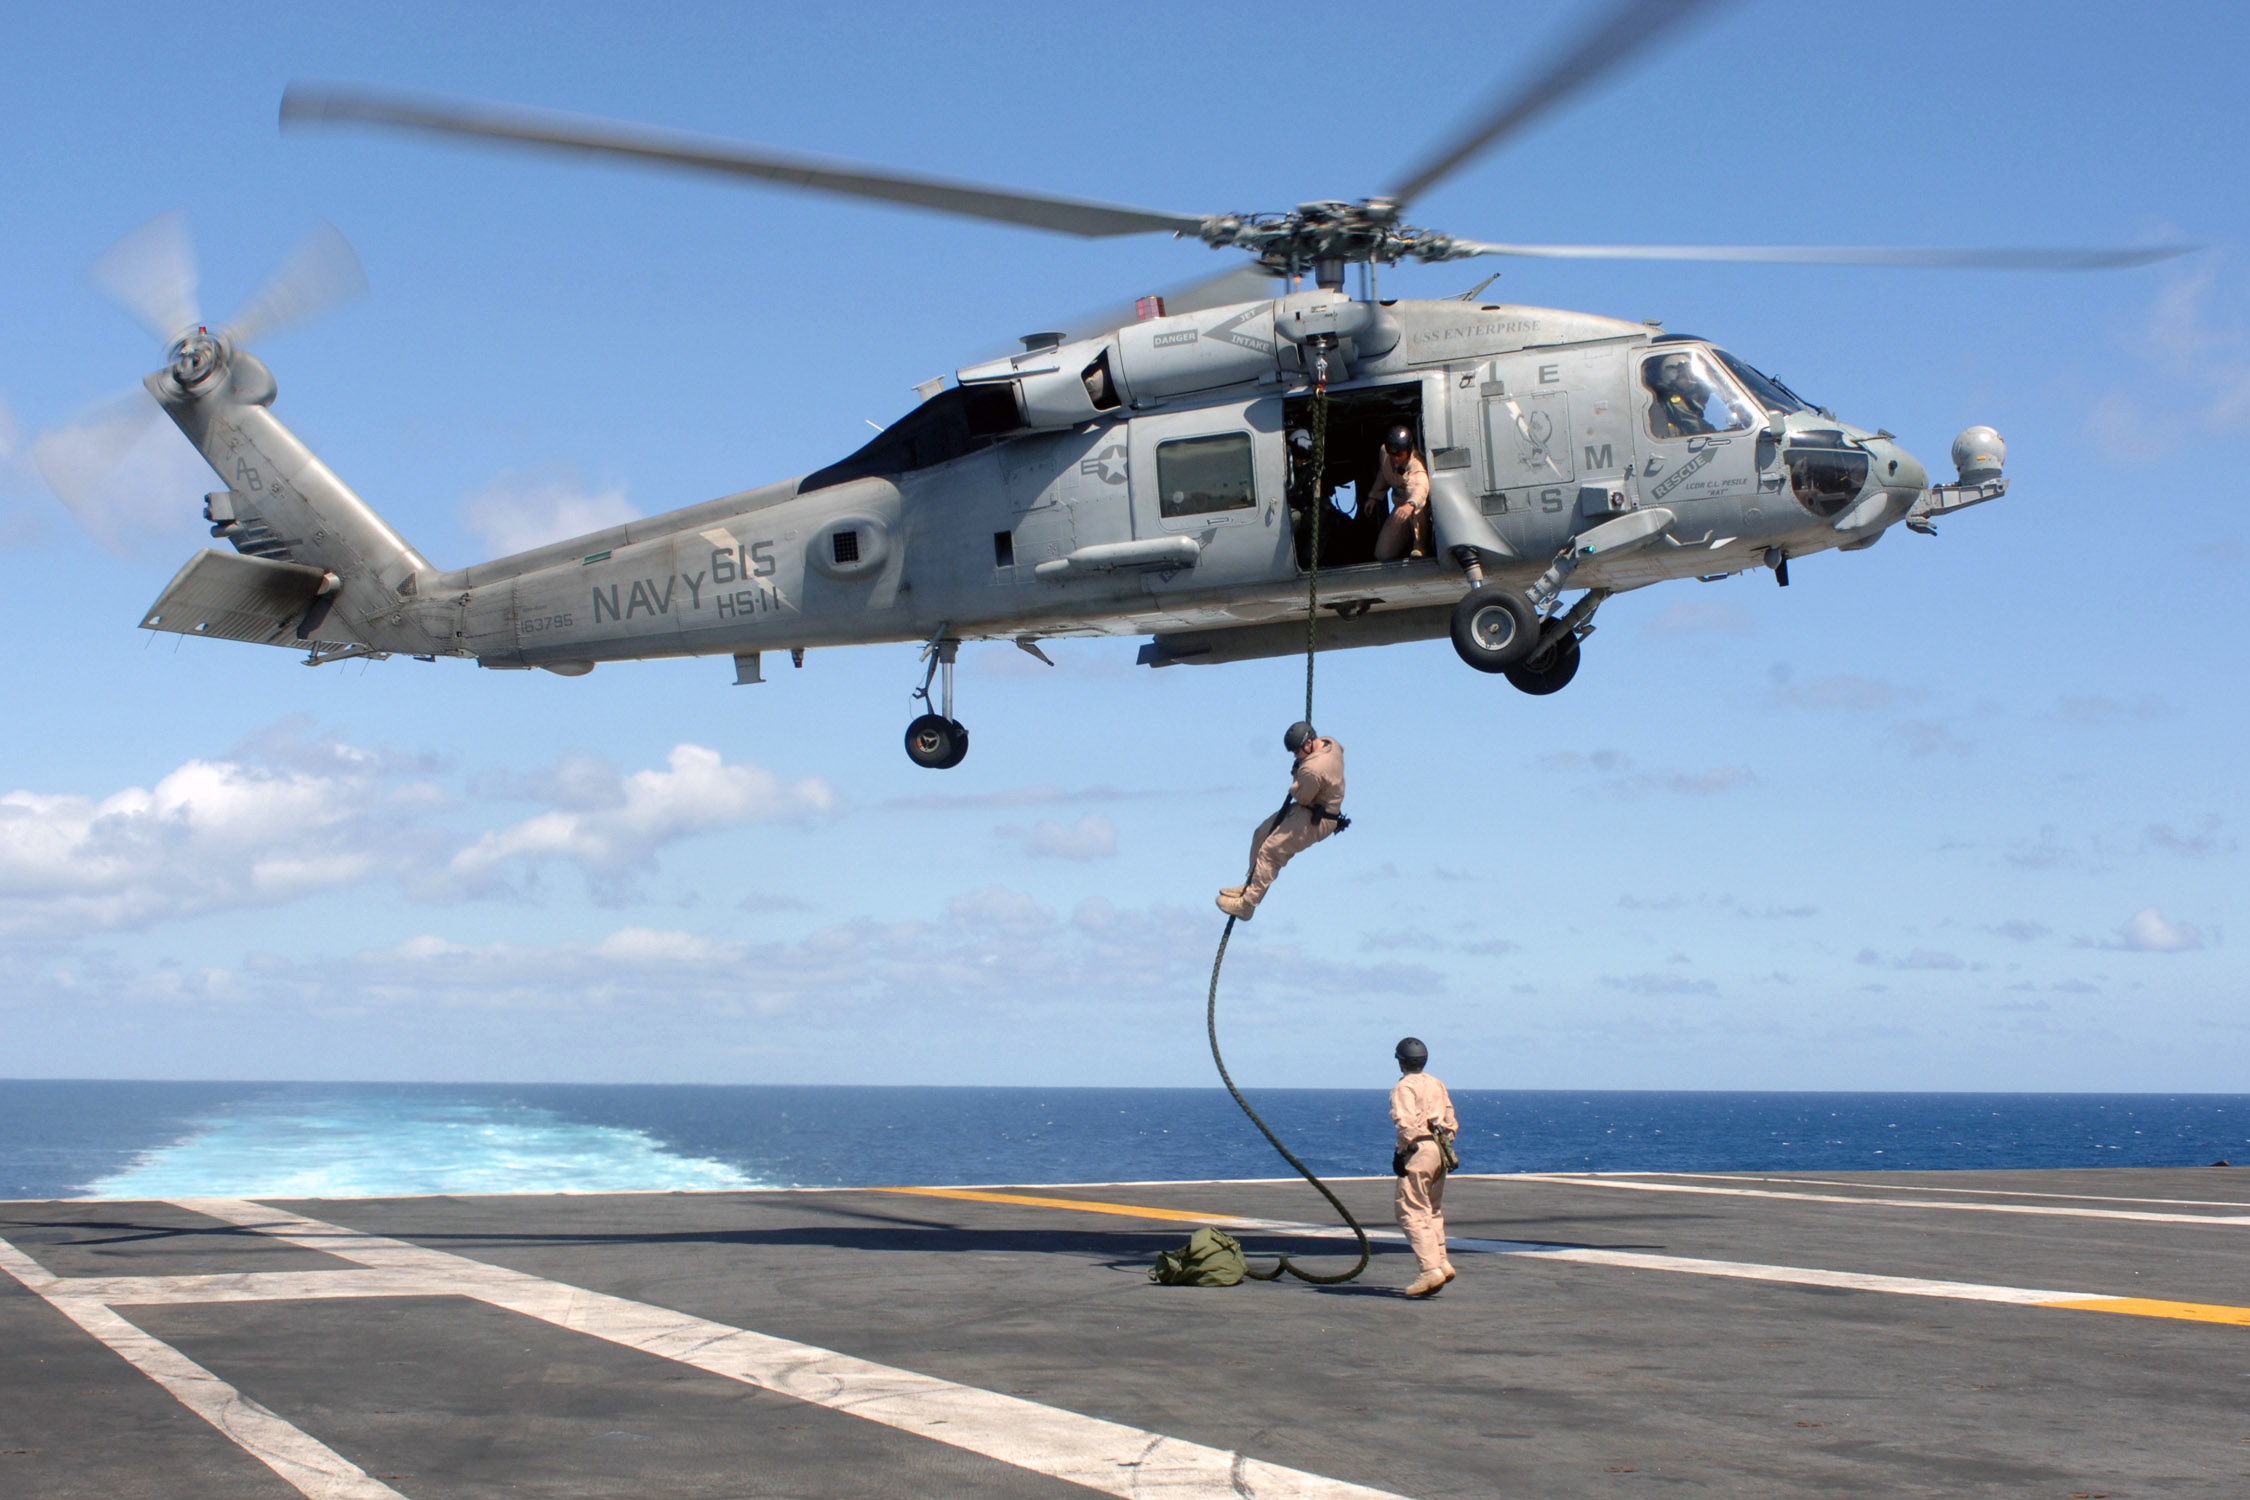 sh 60 helicopter with File Us Navy 070720 N 5928k 007 Explosive Ordnance Disposal Technicians Assigned To Explosive Ordnance Disposal Mobile Unit  Eodmu  2  Det  26  Conduct A Fast Rope Exercise From An Hh 60h Seahawk on File US Navy 050525 N 4104L 001 An SH 60B Seahawk helicopter from Helicopter Anti Submarine Squadron Lite 45  28HSL 45 29  Det  1  flies into the South China Sea in addition U S Navy Natops Sh 60b Seahawk Helicopter Flight Manual together with Mitsubishi H 60 also Helicopteros De La Armada Espanola El in addition Helicopter Papercraft.